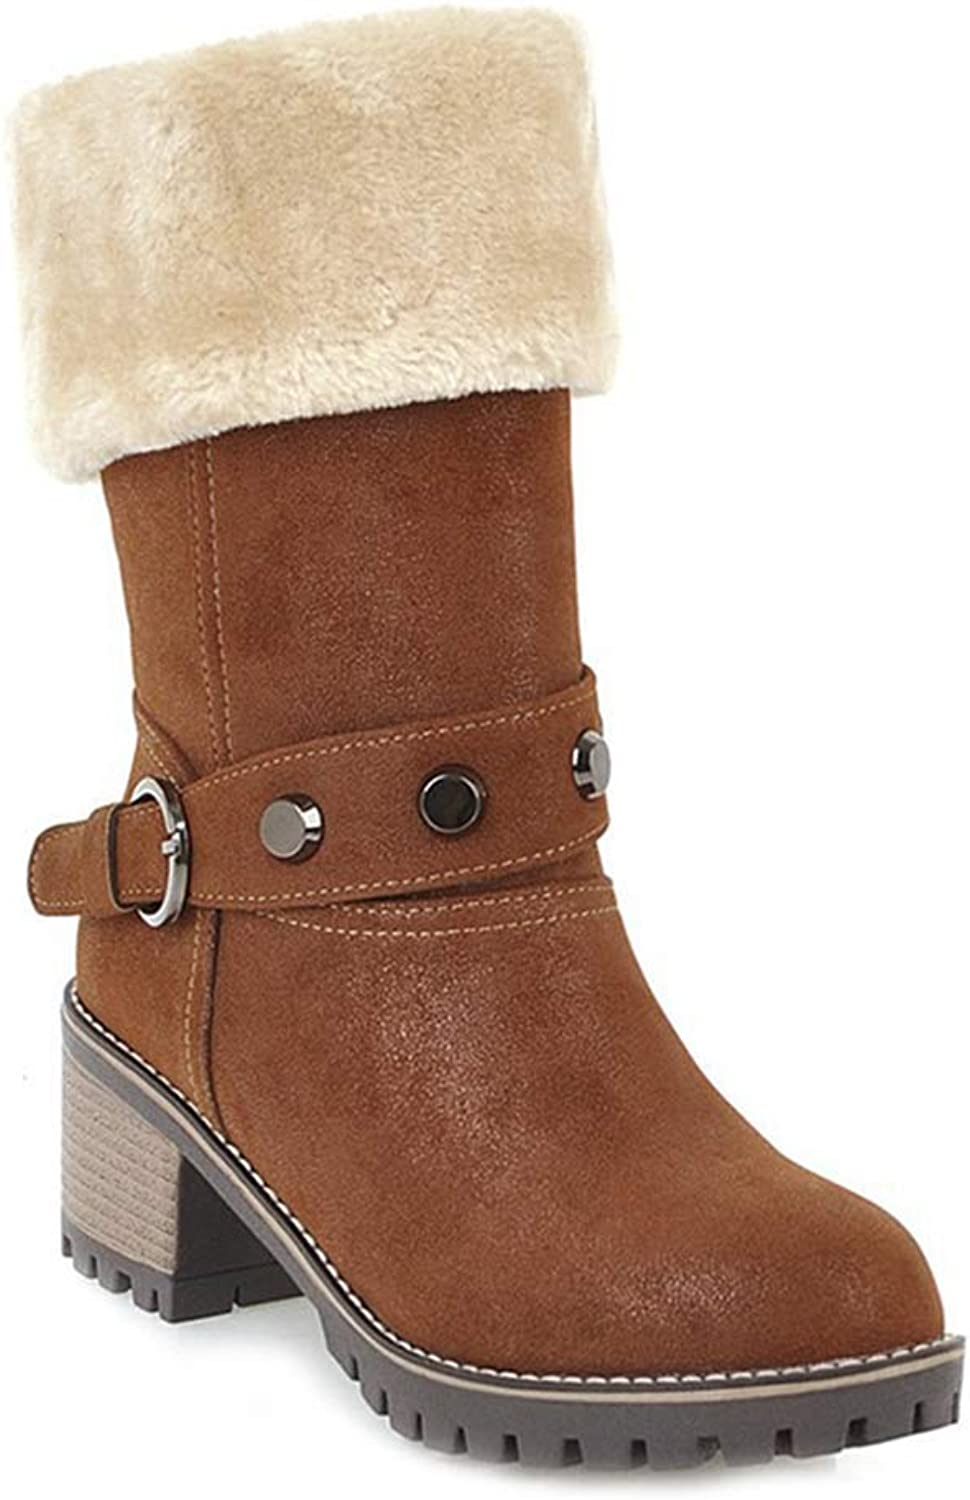 Elsa Wilcox Women Buckle Platform Chunky Mid Stacked Heel Bootie Mid Calf Warm Snow Boots Winter Fur Ankle Boots